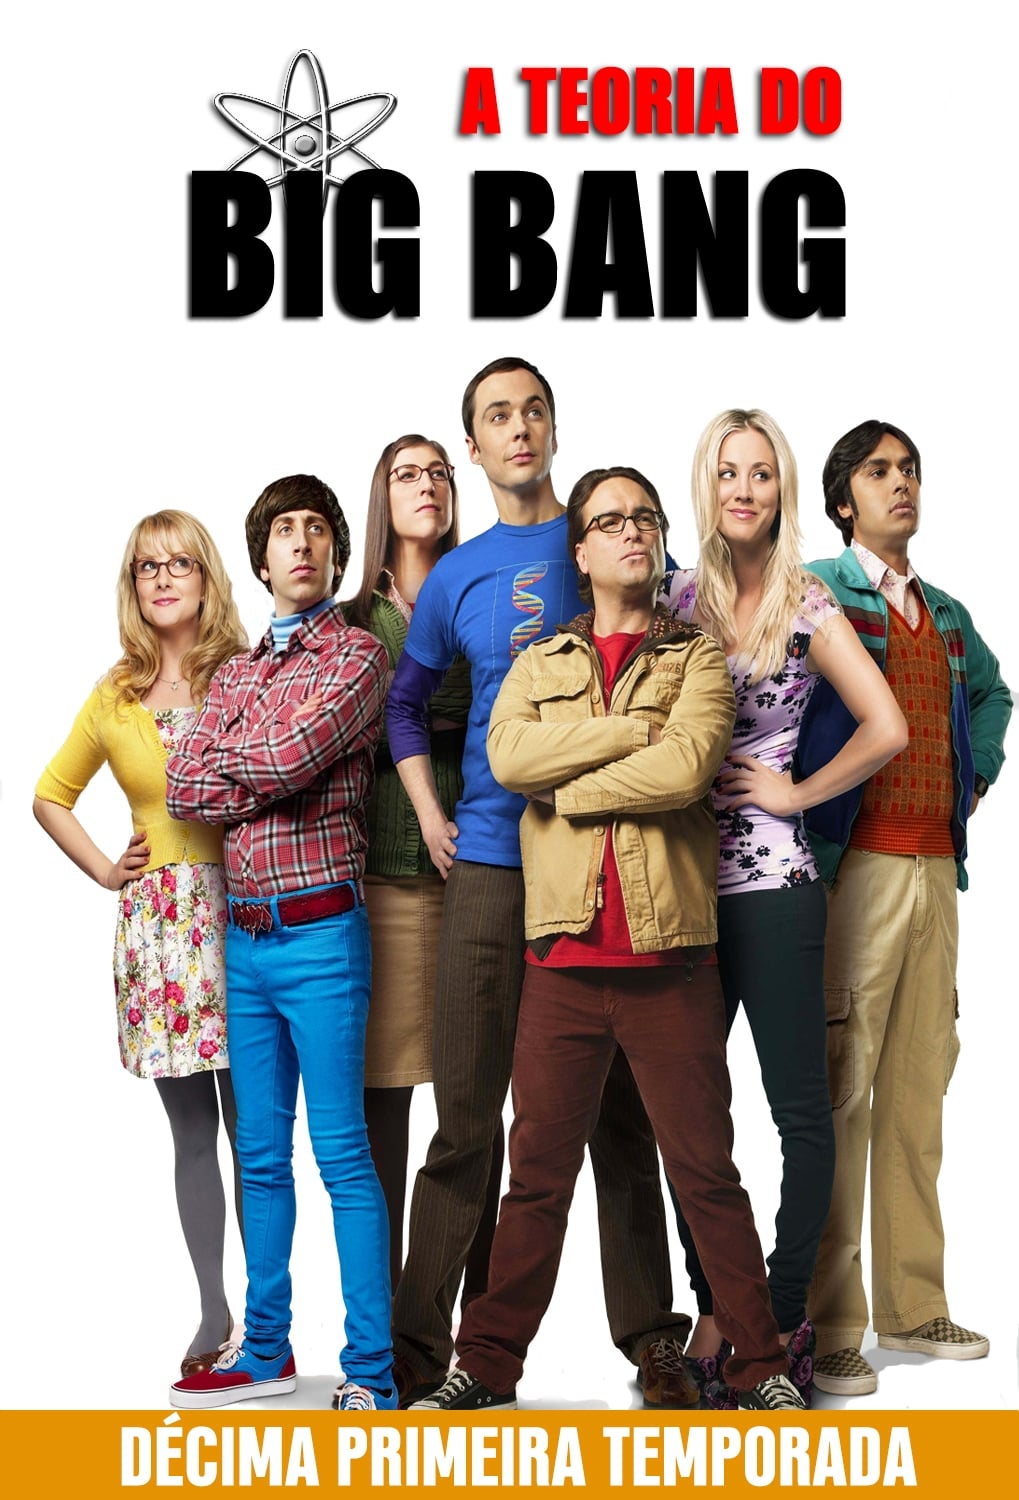 The Big Bang Theory 11ª Temporada Torrent (2017) Legendado e Dublado 720p Download